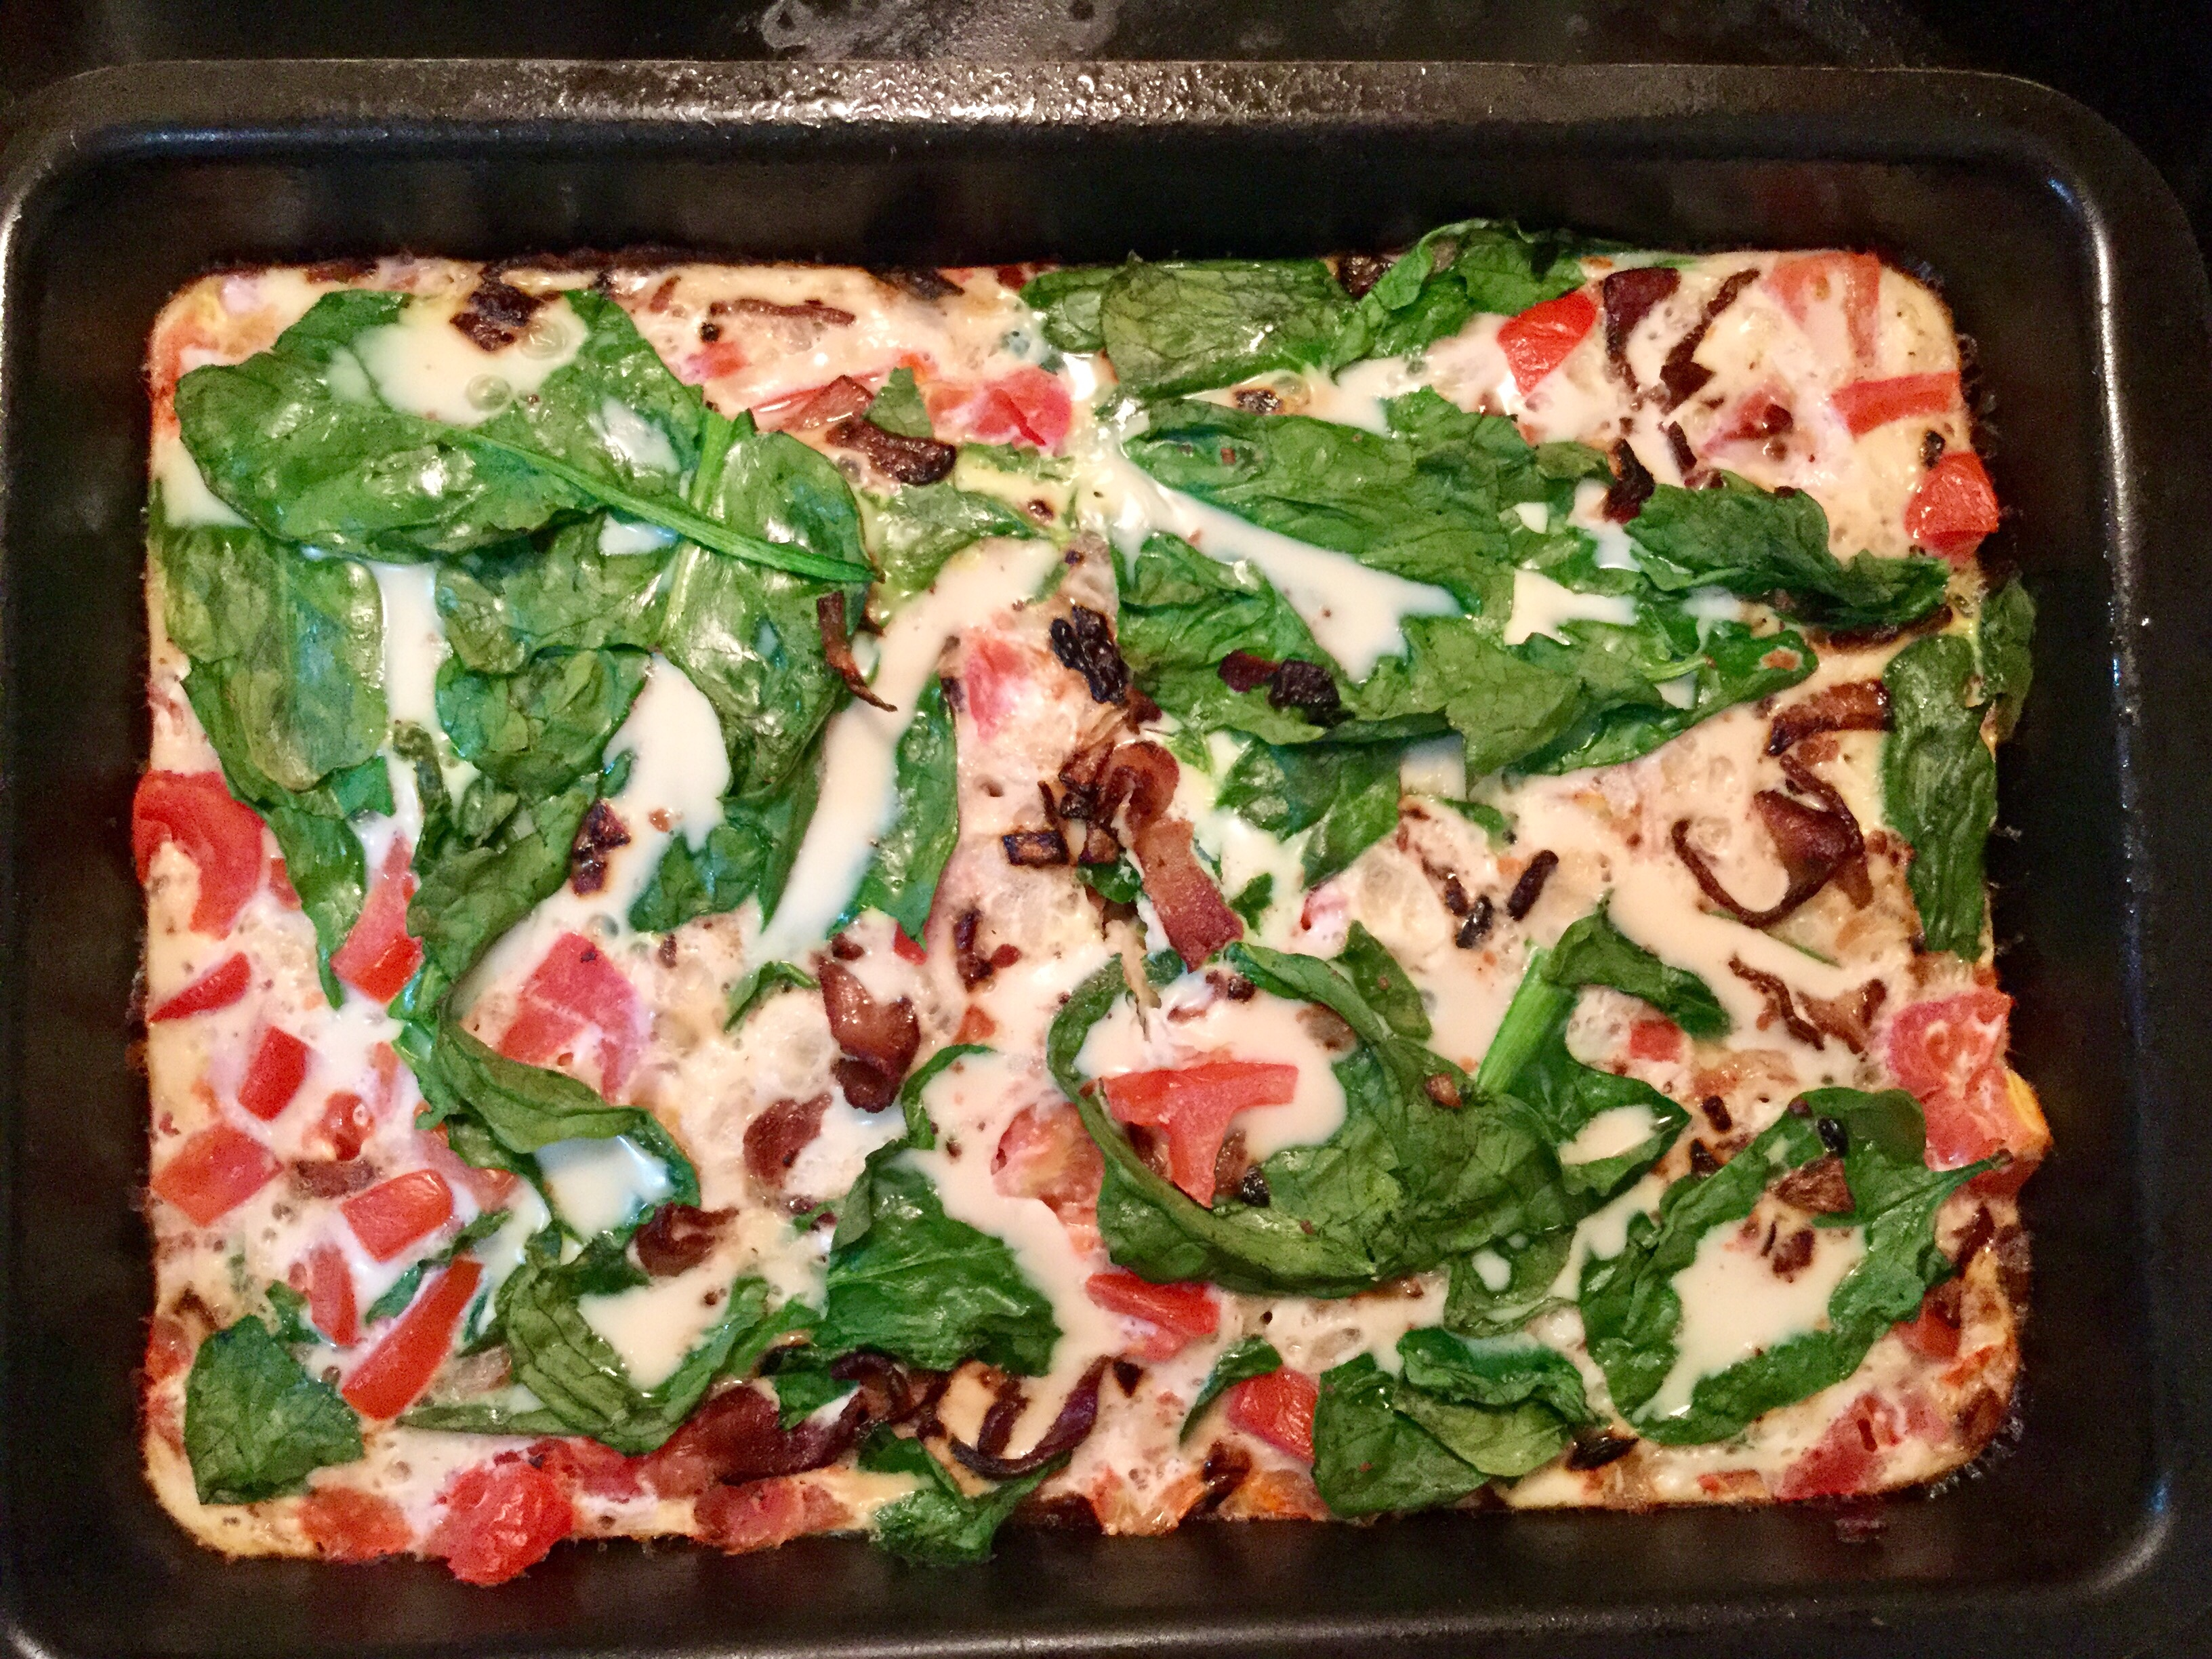 Egg white and Spinach Breakfast Bake